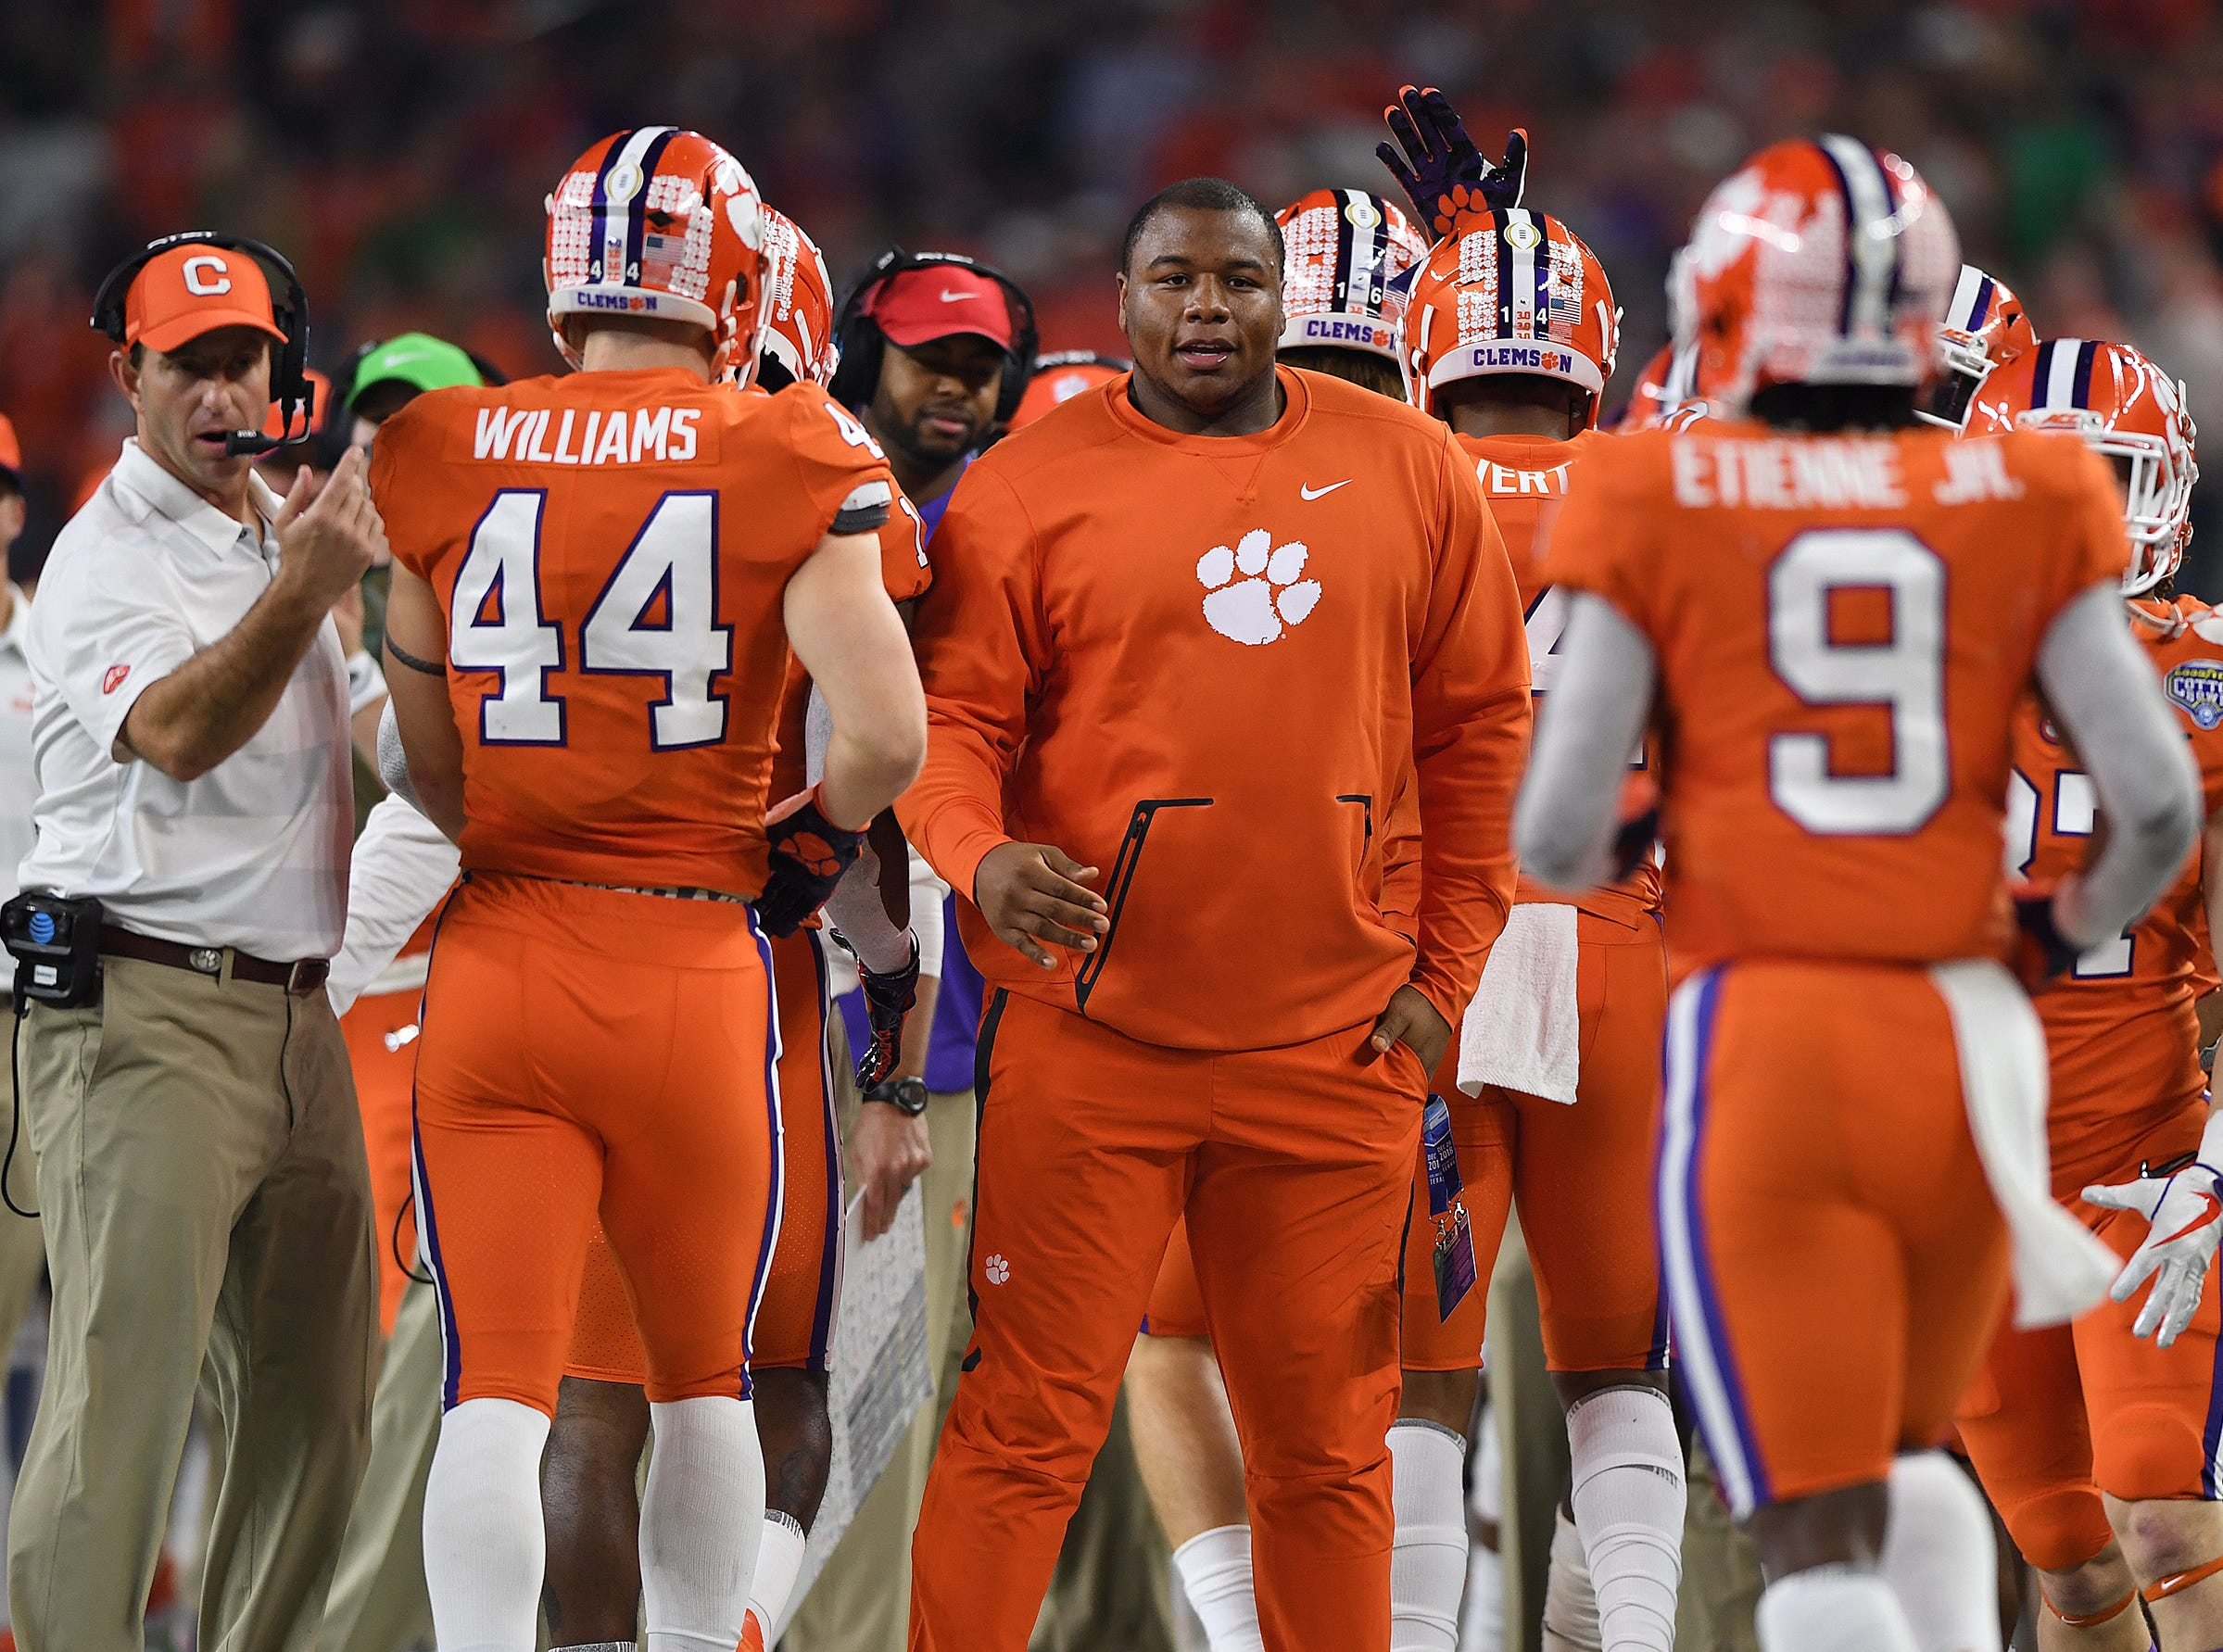 Clemson defensive lineman Dexter Lawrence during the 3rd quarter of the Goodyear Cotton Bowl at AT&T stadium in Arlington, TX Saturday, December 29, 2018.